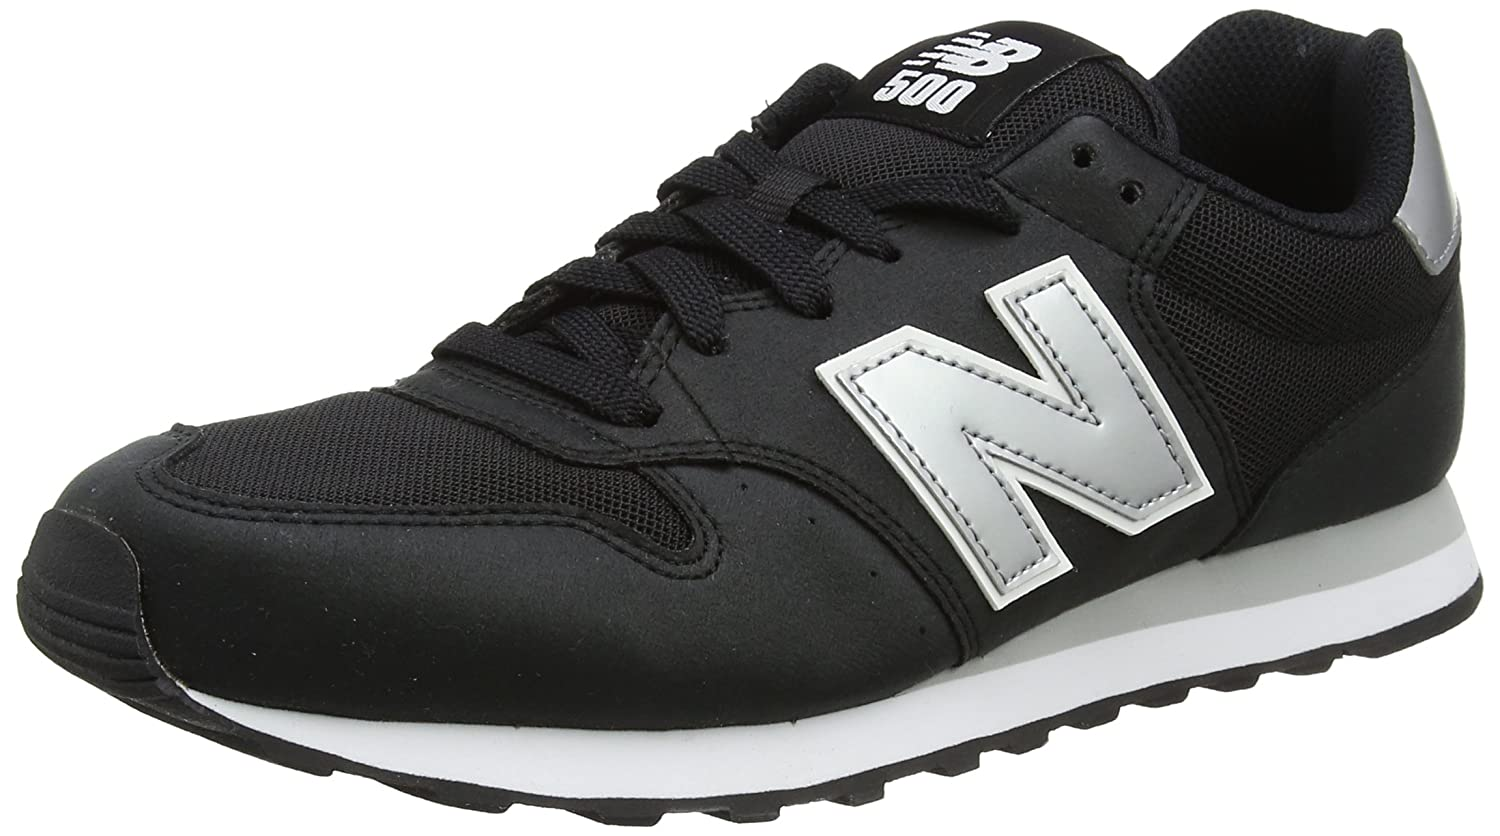 fd9610684 new balance Men's 500 Sneakers: Buy Online at Low Prices in India -  Amazon.in